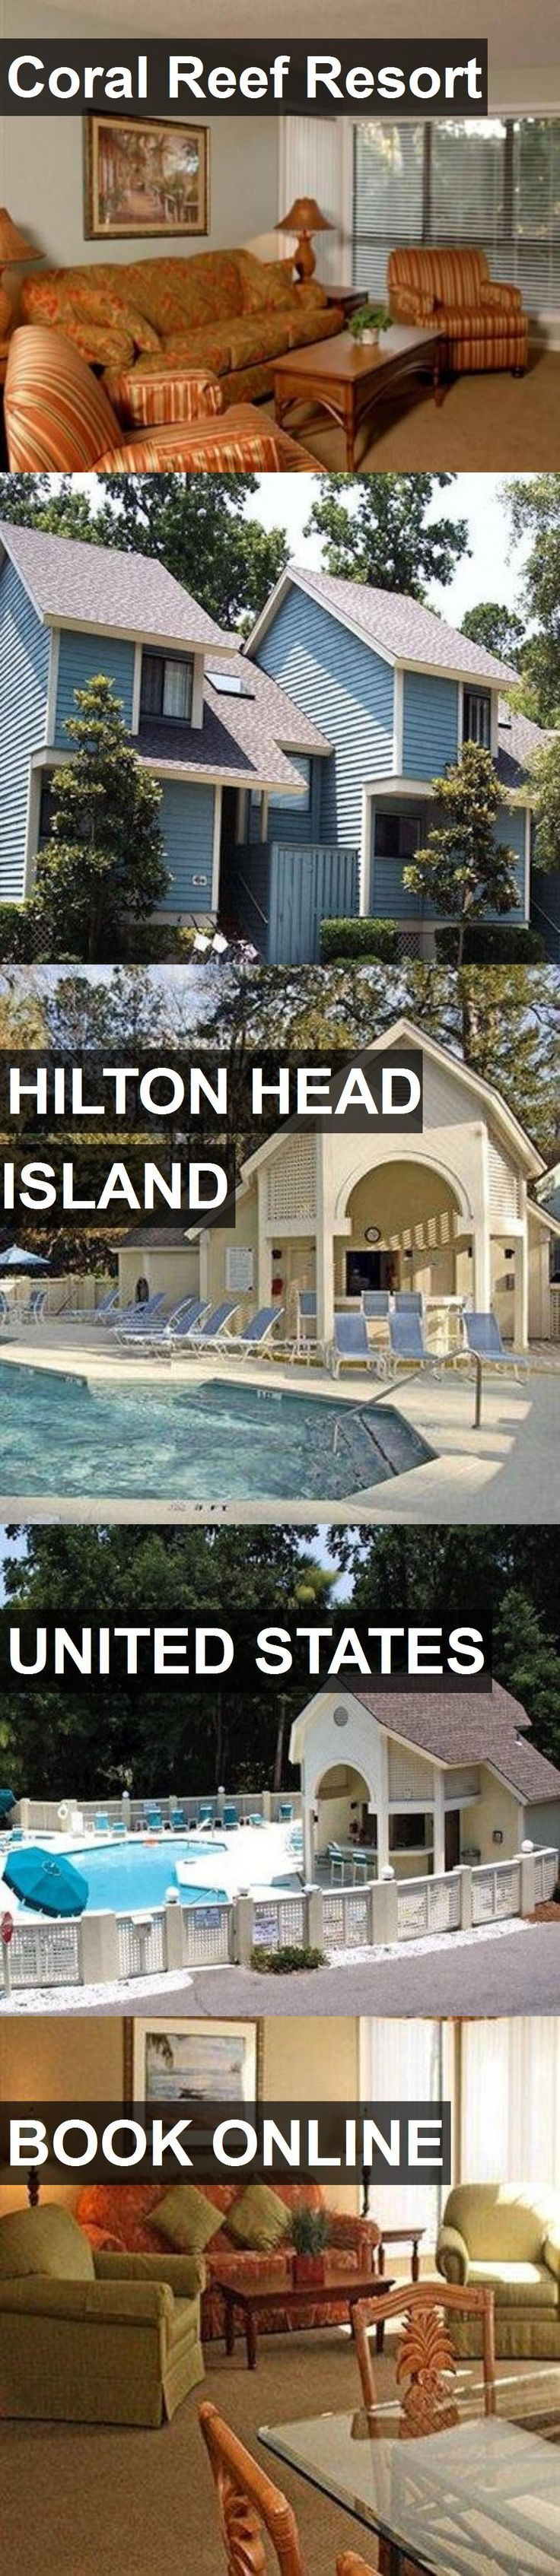 Hotel Coral Reef Resort in Hilton Head Island, United States. For more information, photos, reviews and best prices please follow the link. #UnitedStates #HiltonHeadIsland #travel #vacation #hotel